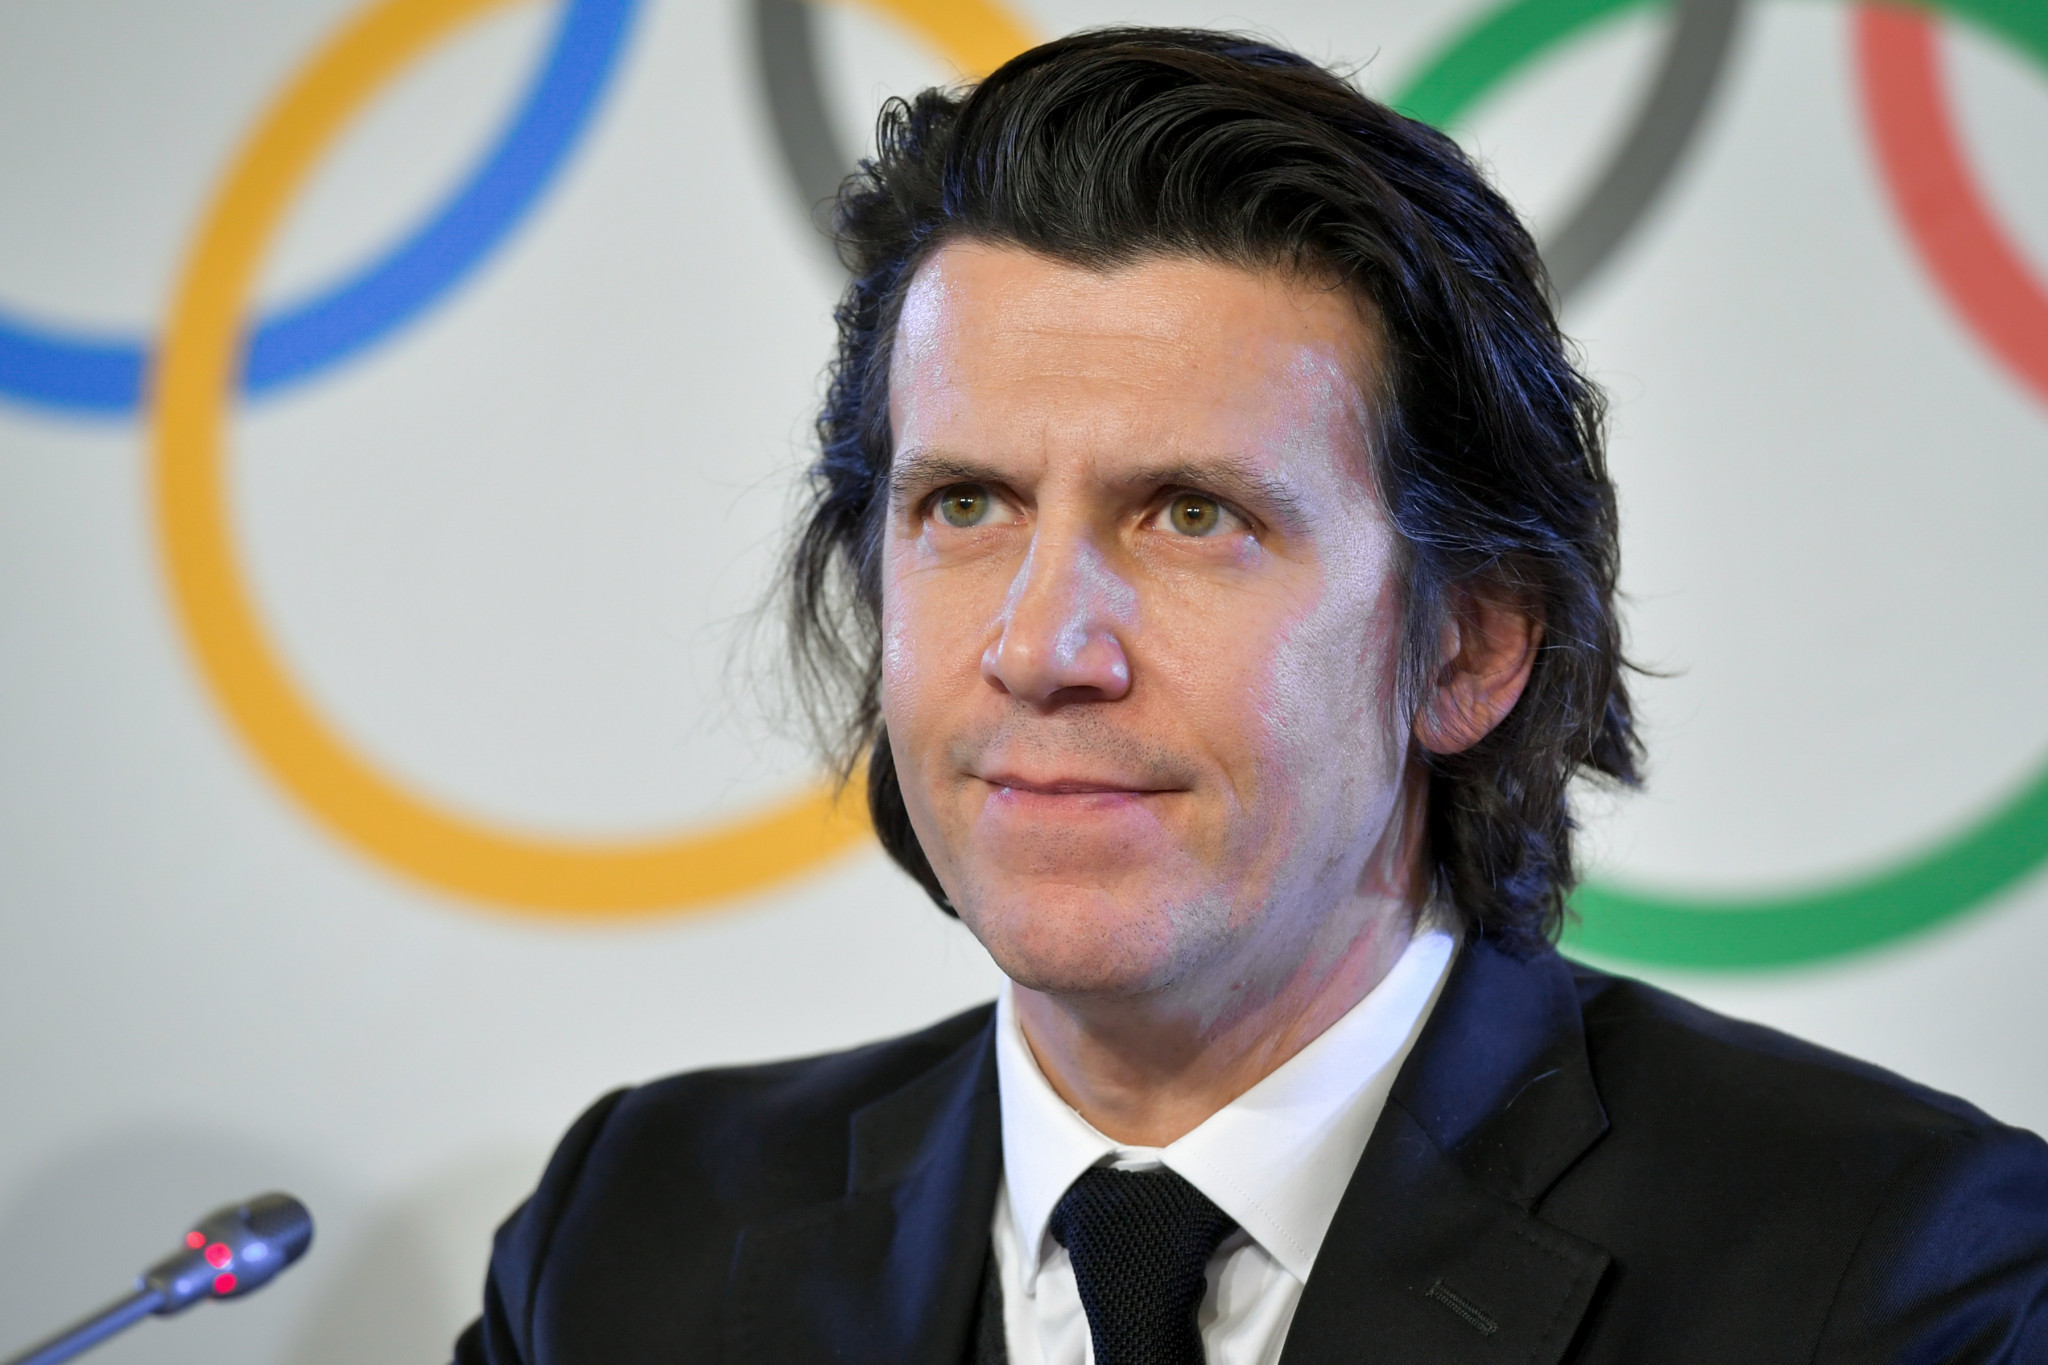 Christophe Dubi, IOC executive director for the Olympic Games, believes the